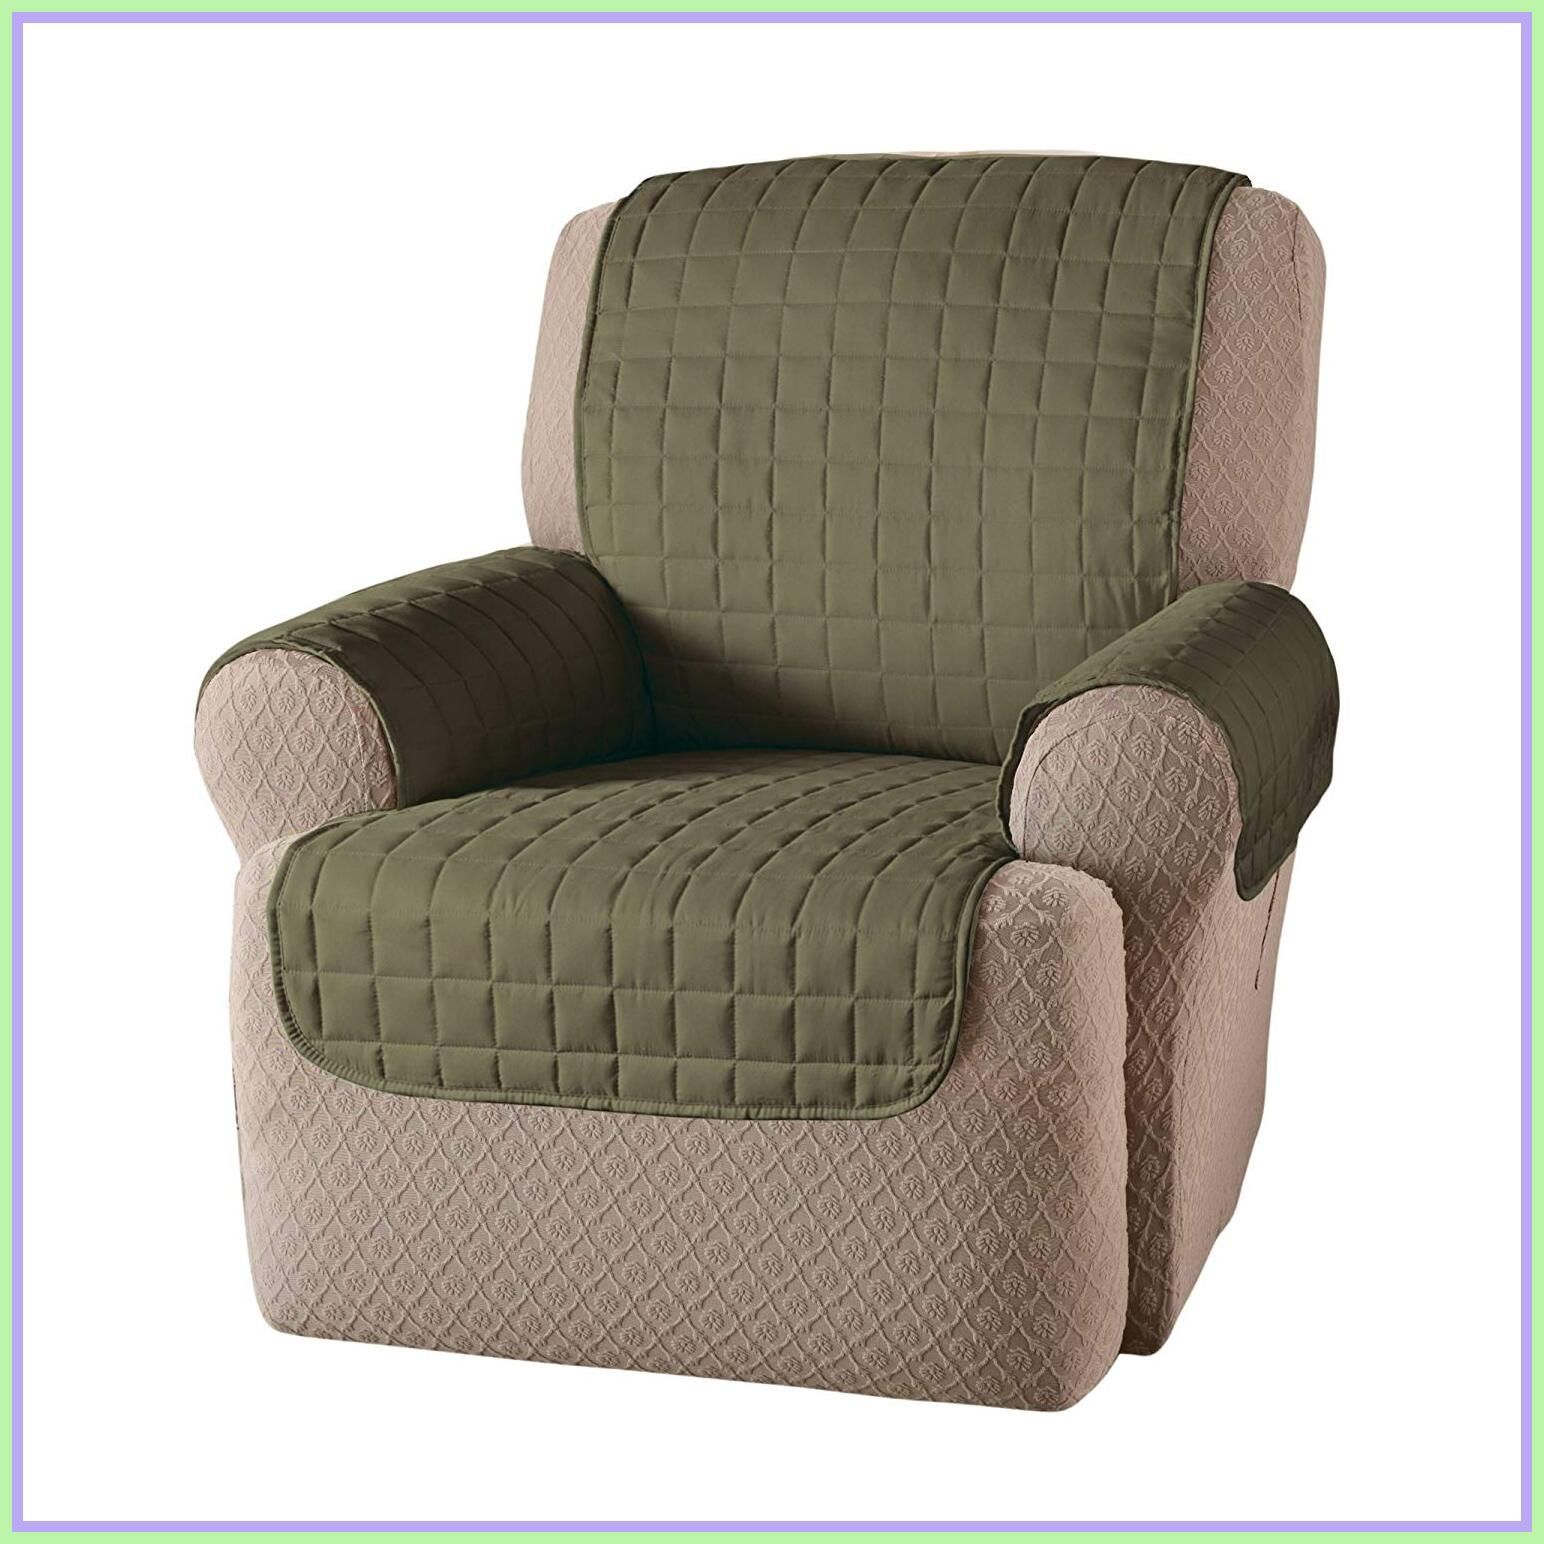 119 Reference Of Small Recliner Chair Covers In 2020